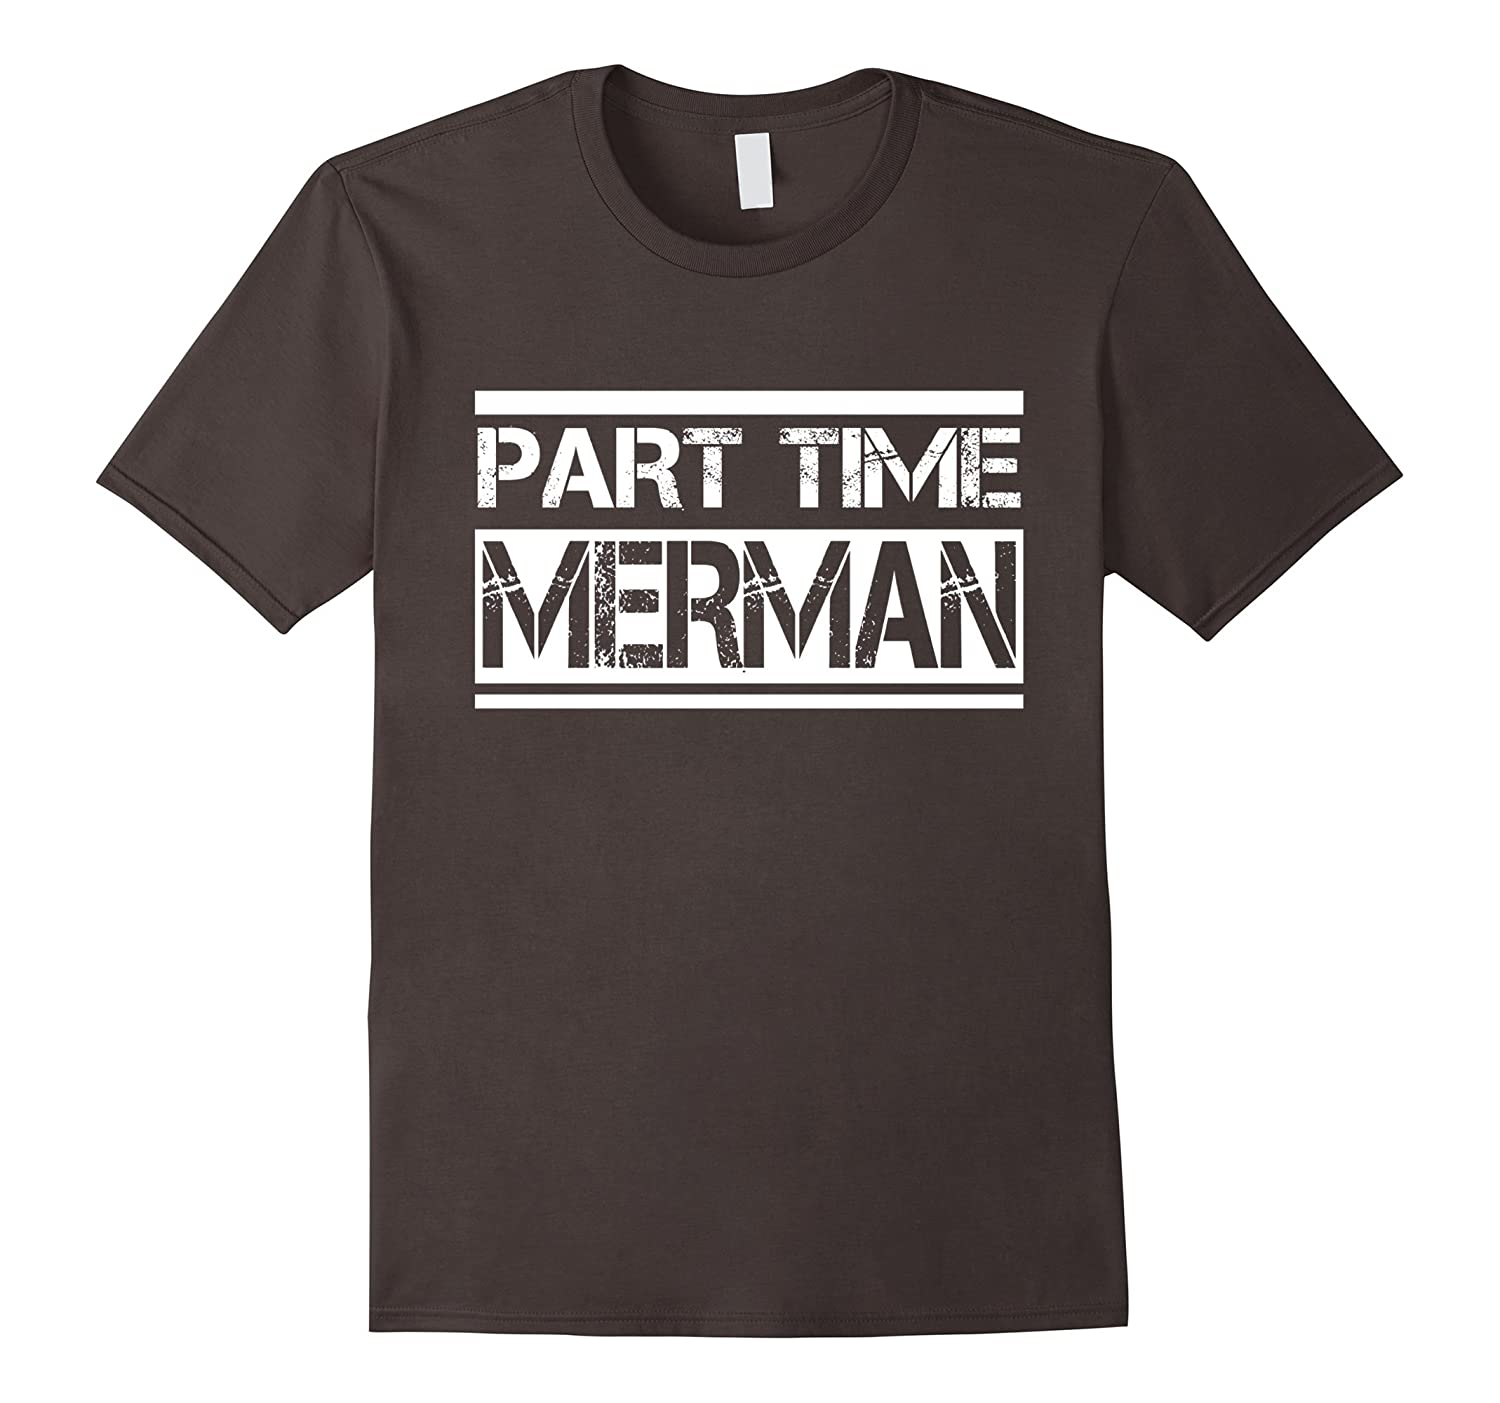 Part Time Merman Mens T-shirt Gift Tee For Men Boys Funny Humor T ...